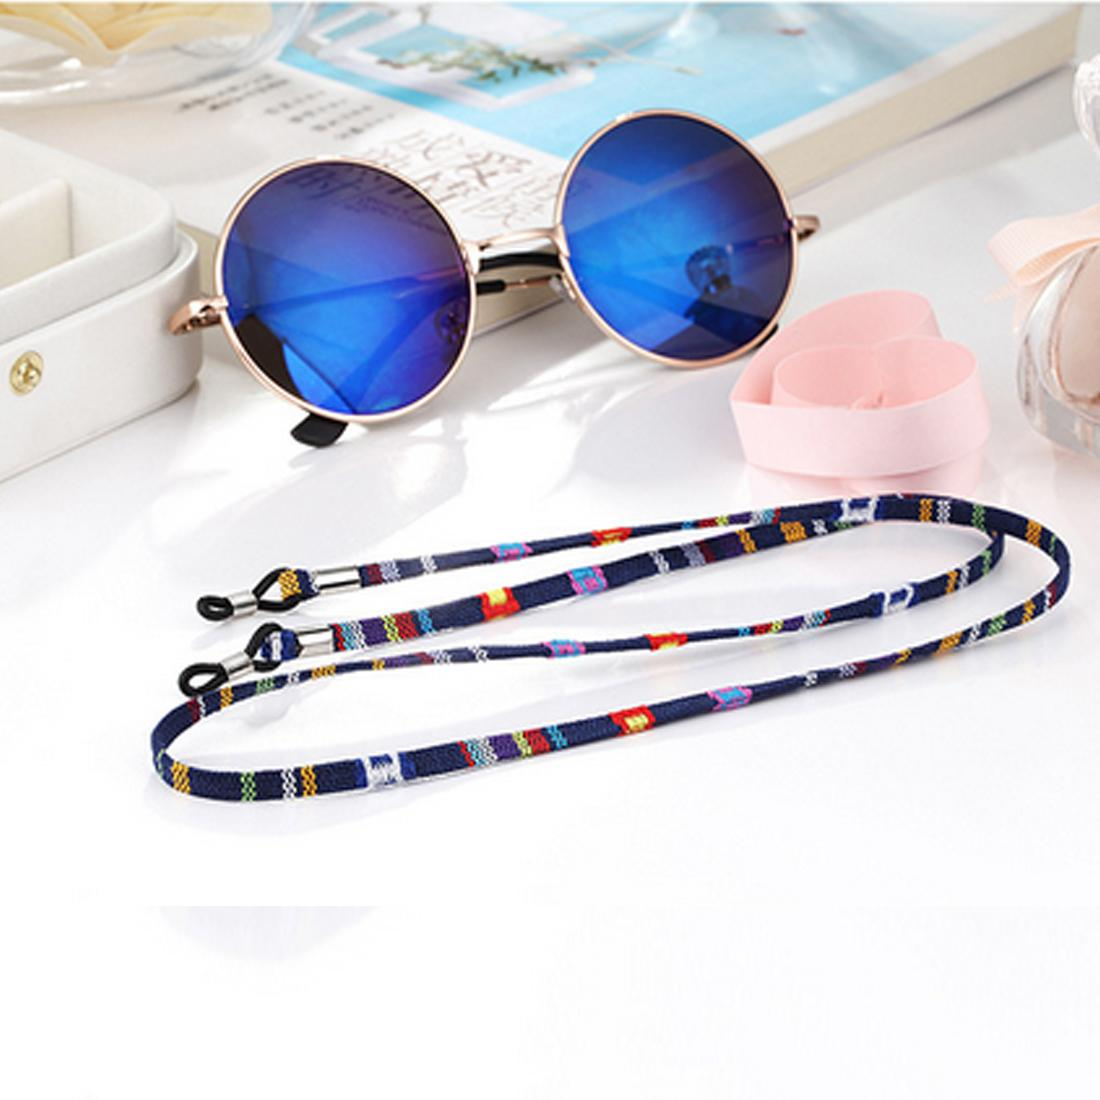 6d2d90a743 2019 Fasion Eyeglass Sunglasses Cotton Neck String Cord Retainer Strap  Eyewear Lanyard Holder With Good Silicone Loop From Sohucom